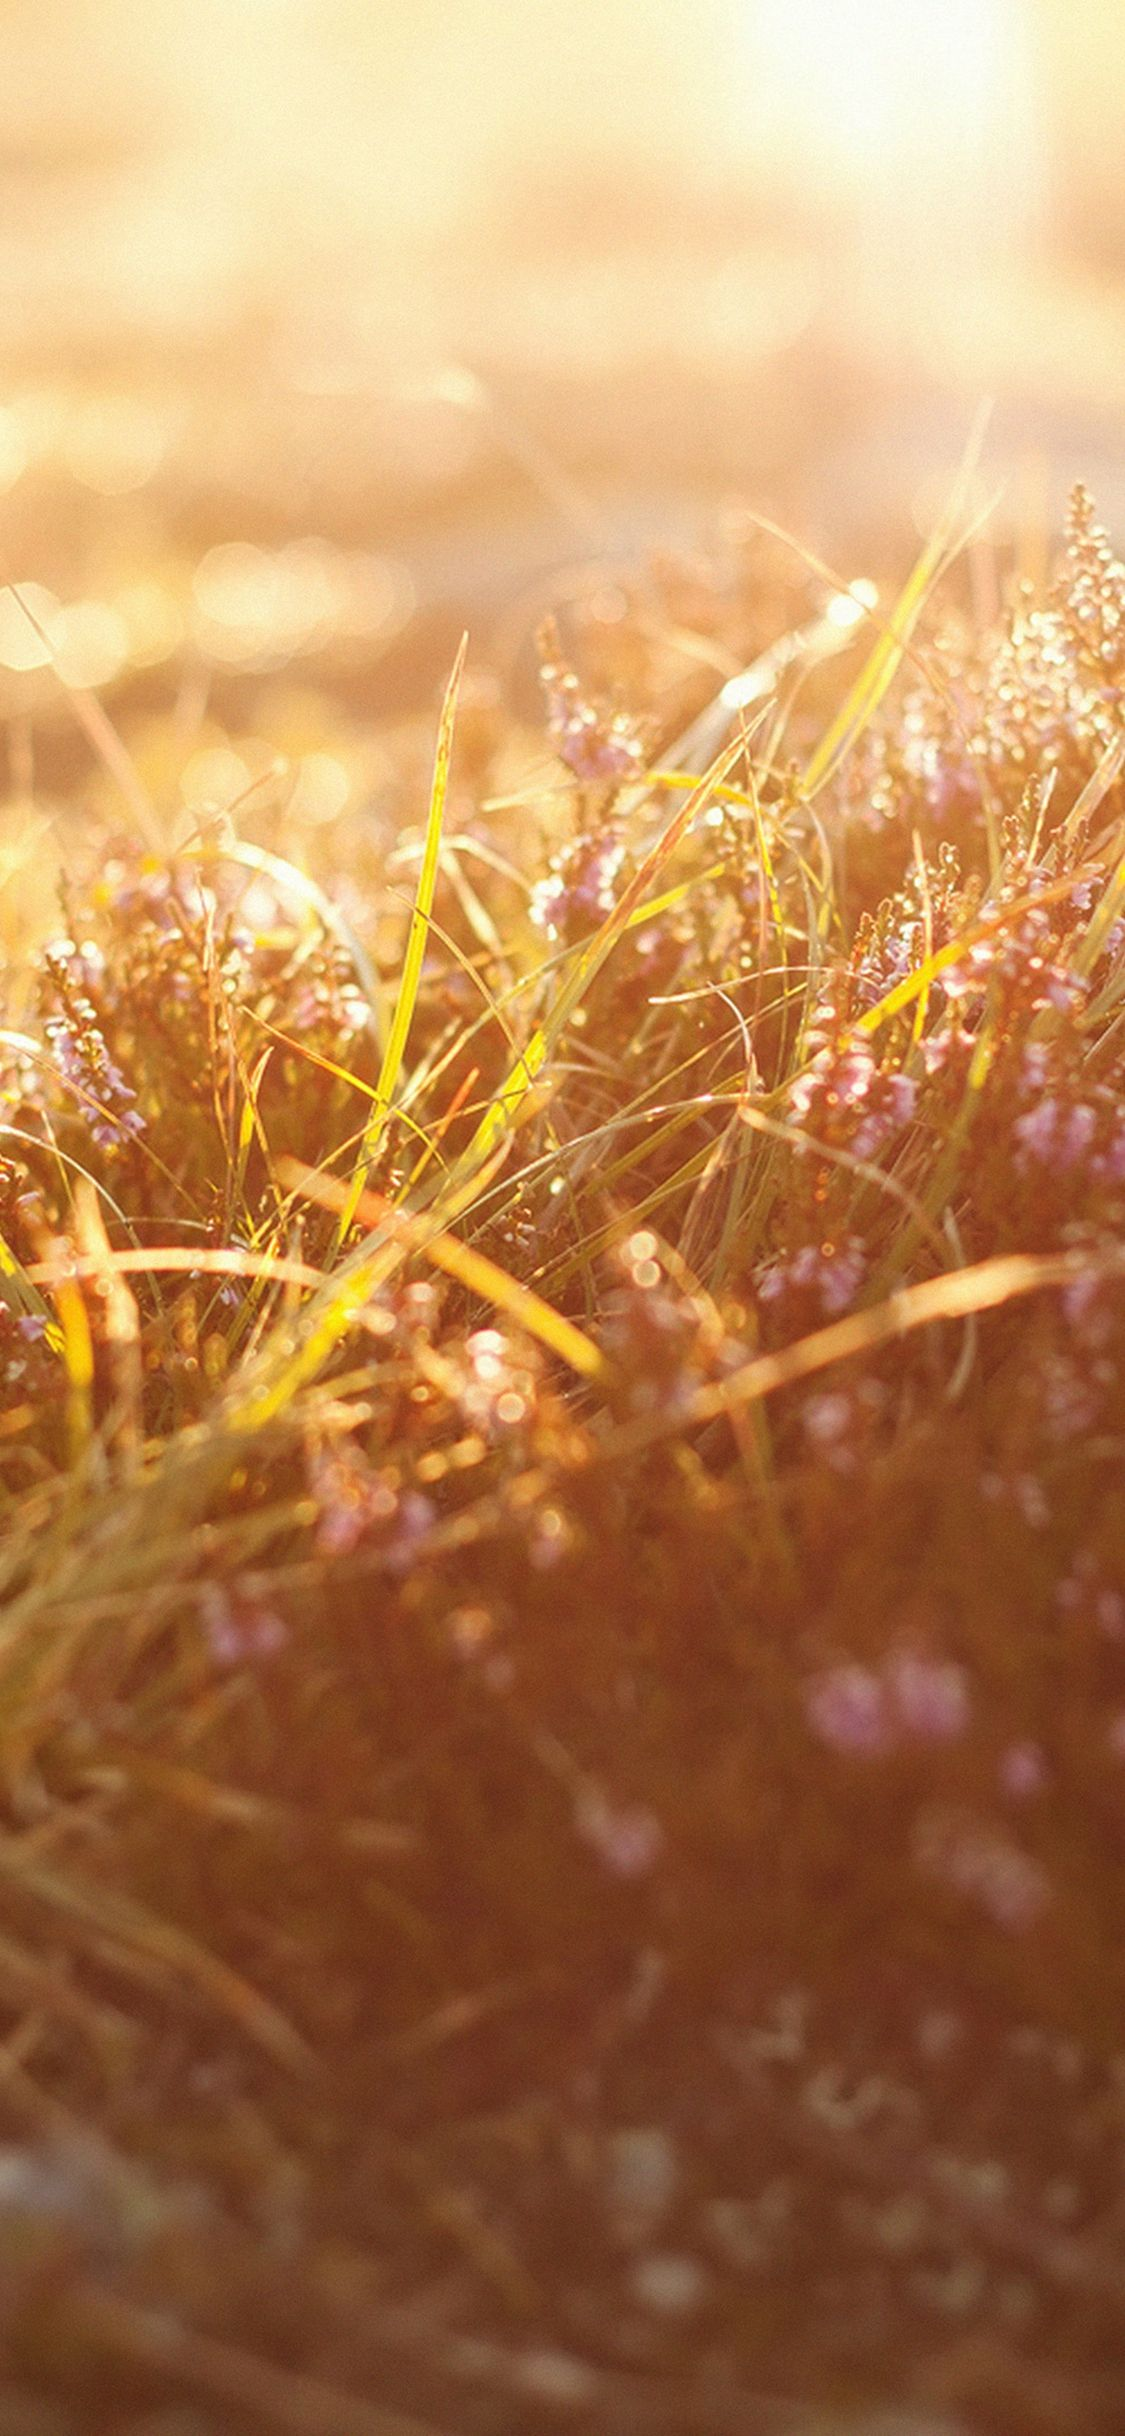 Sun Rise Flower Grass Love Nature Iphone X Wallpaper